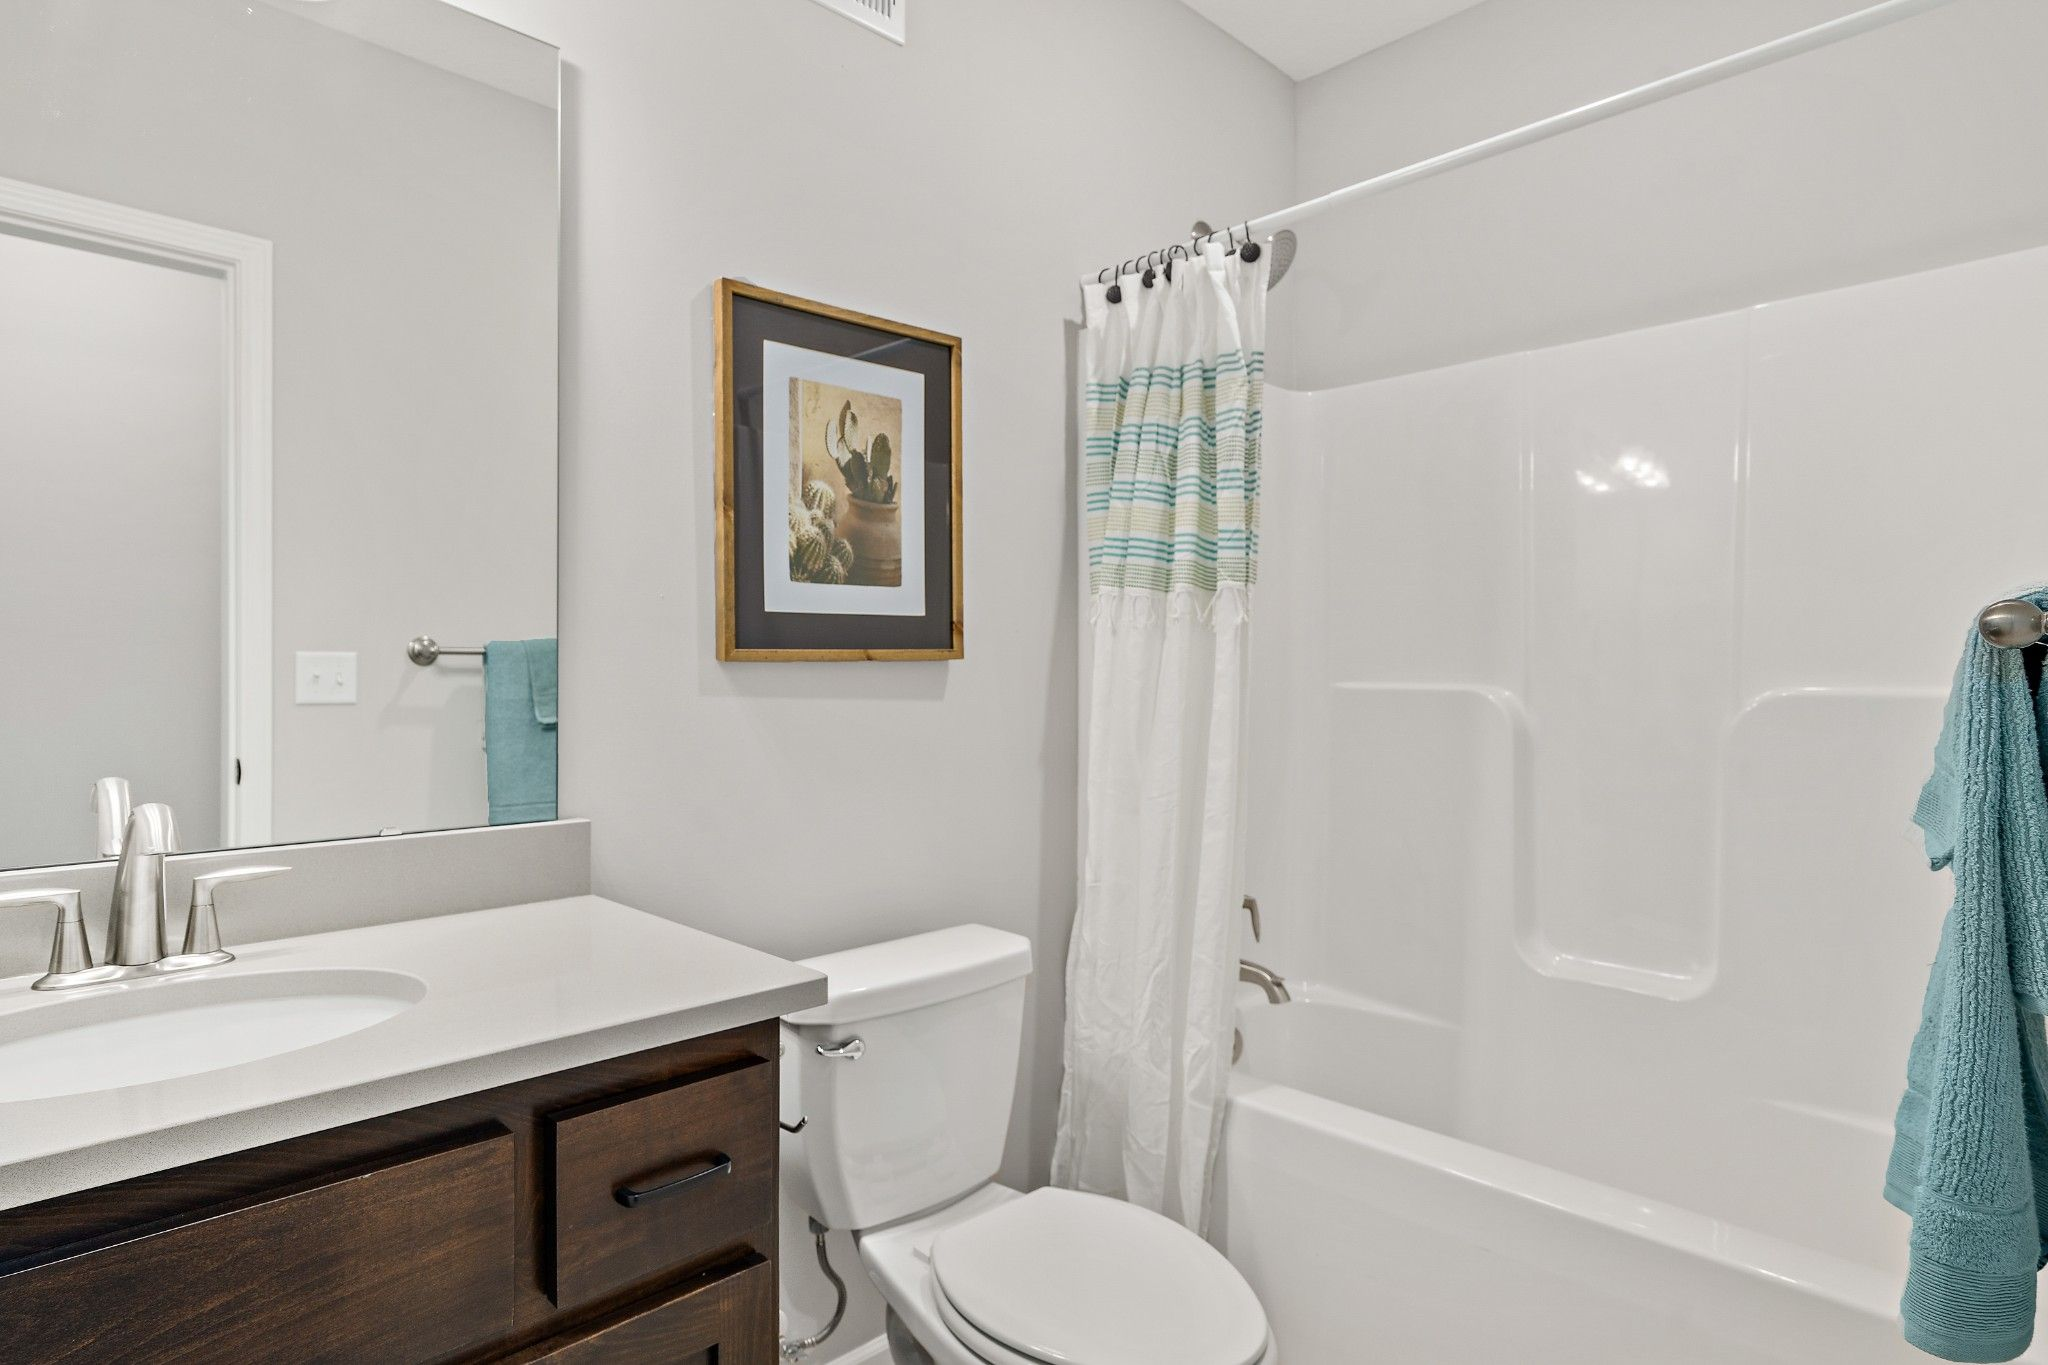 Bathroom featured in the Carbondale By Summit Homes in Kansas City, MO